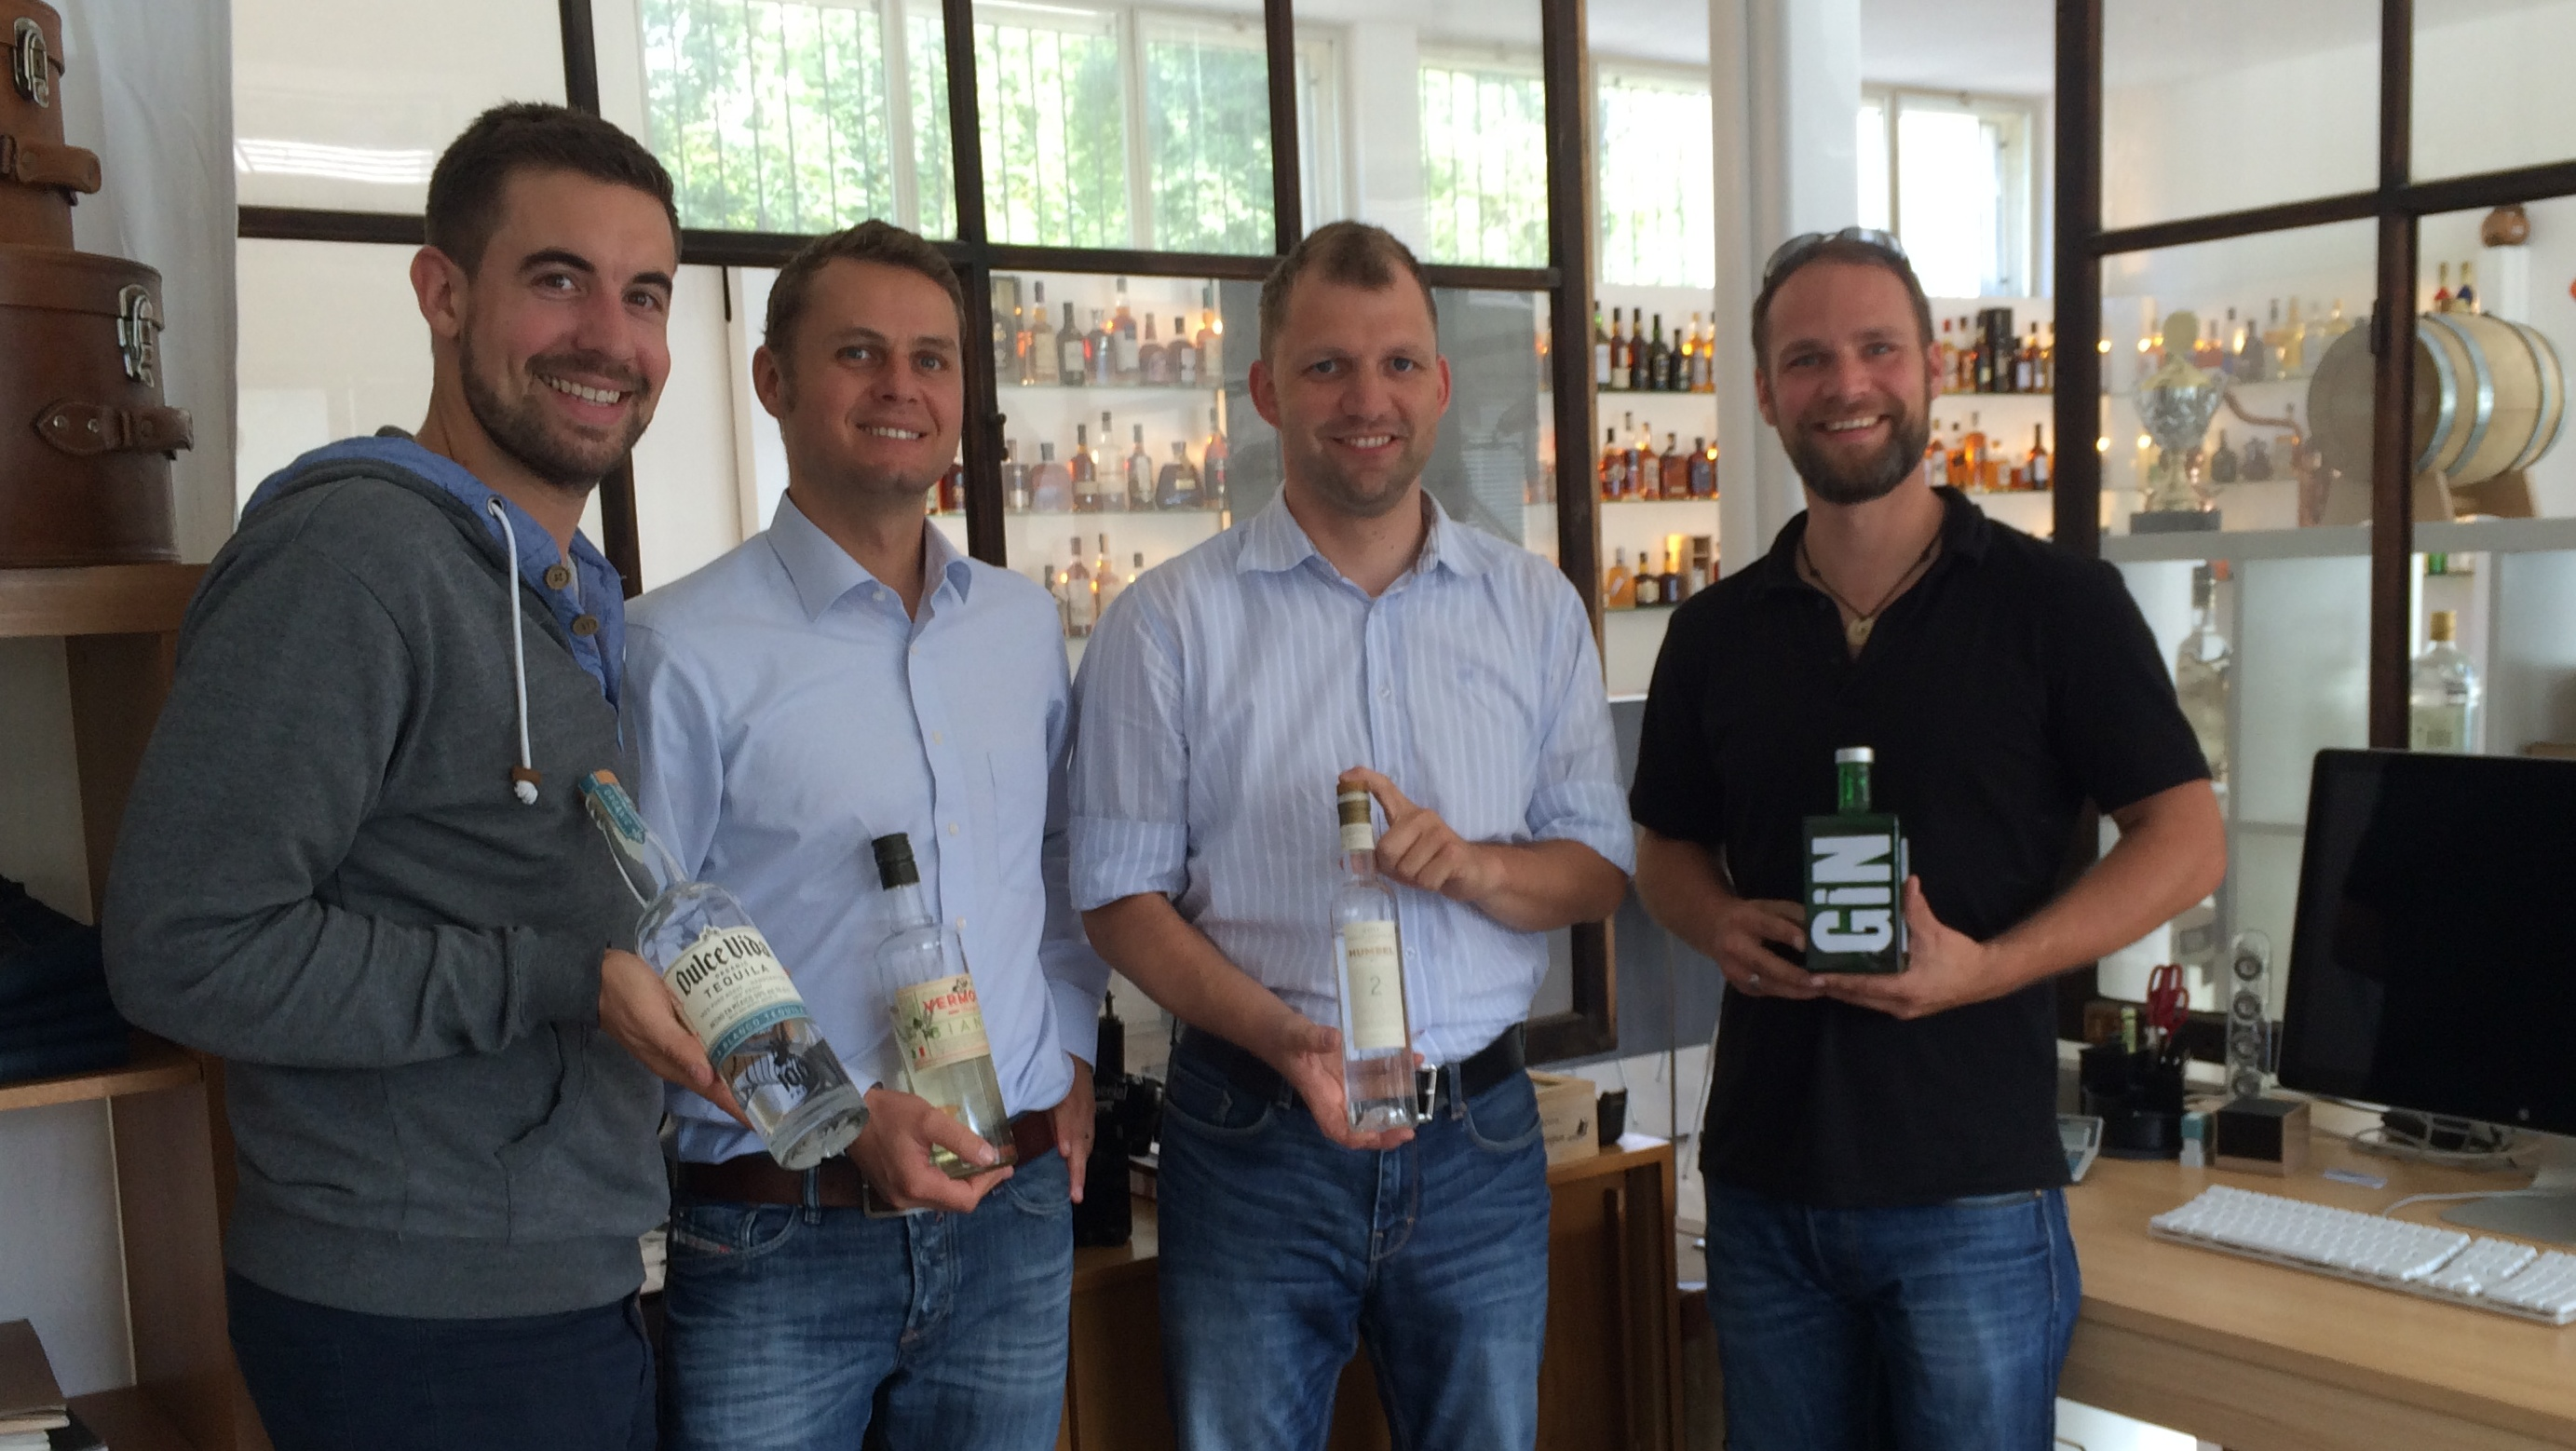 Humbel_meets_Bio-Bar-Team_in_Stallikon_2014-08-05 15.51.46